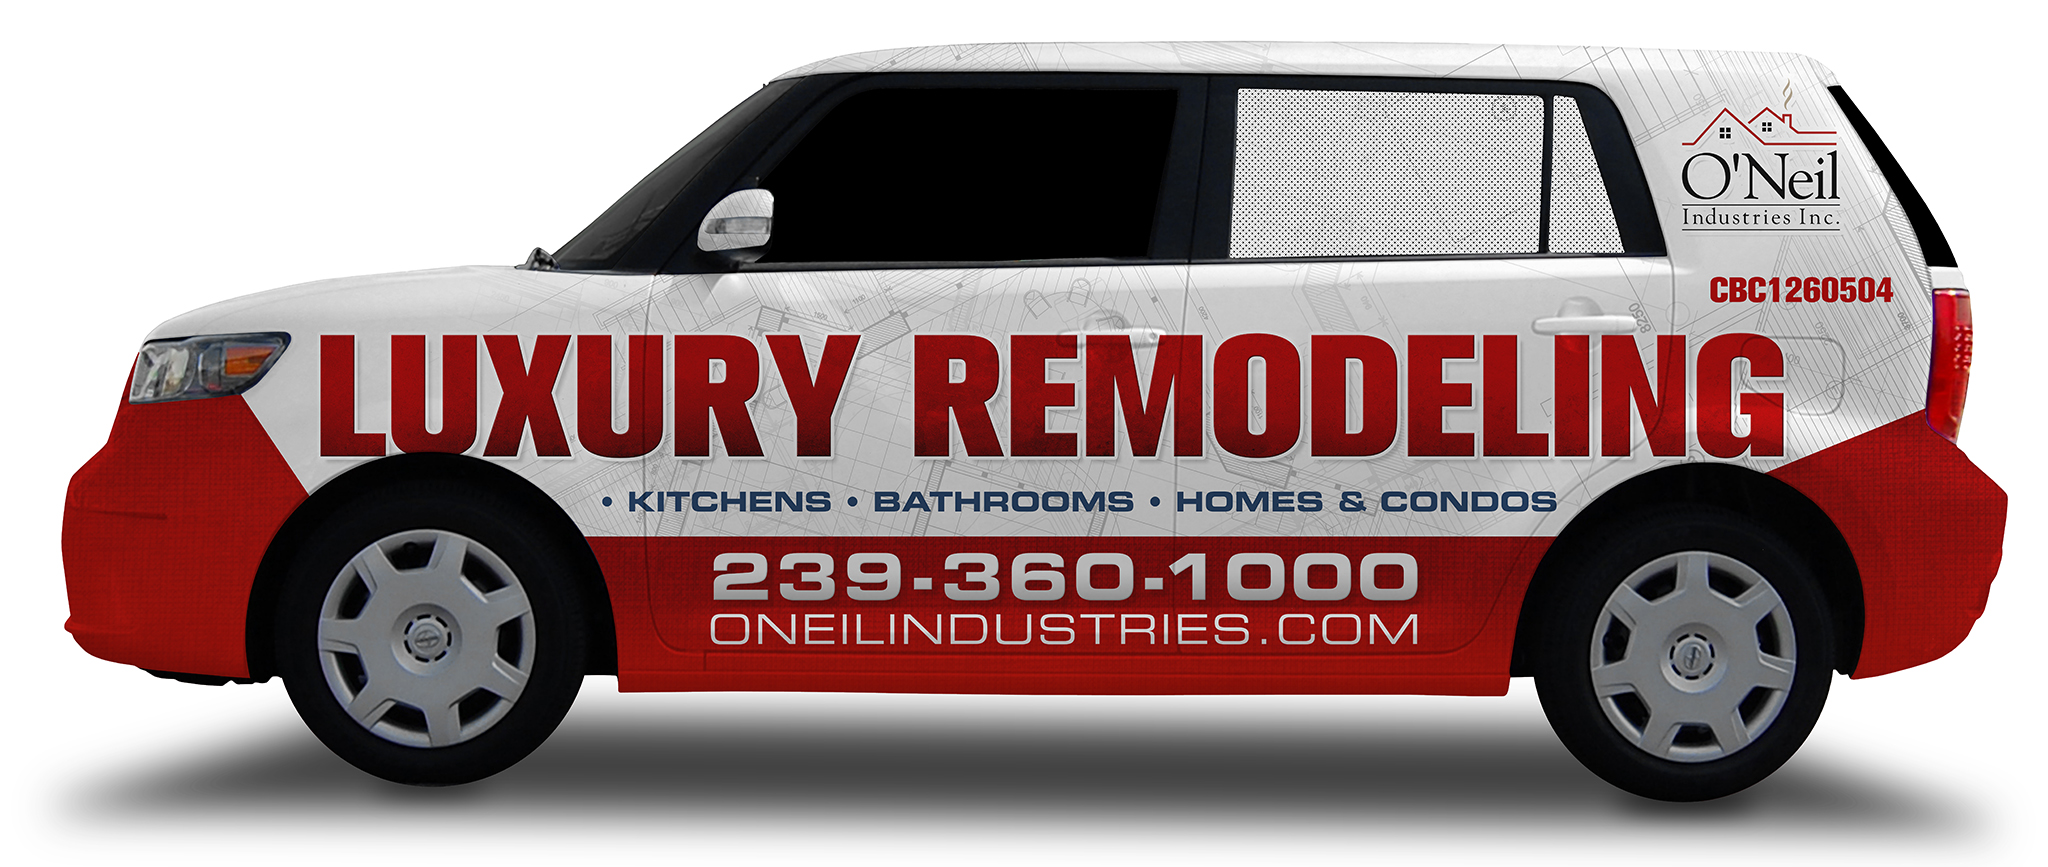 O'Neil Industries Car Wrap for Remodeling Contractor